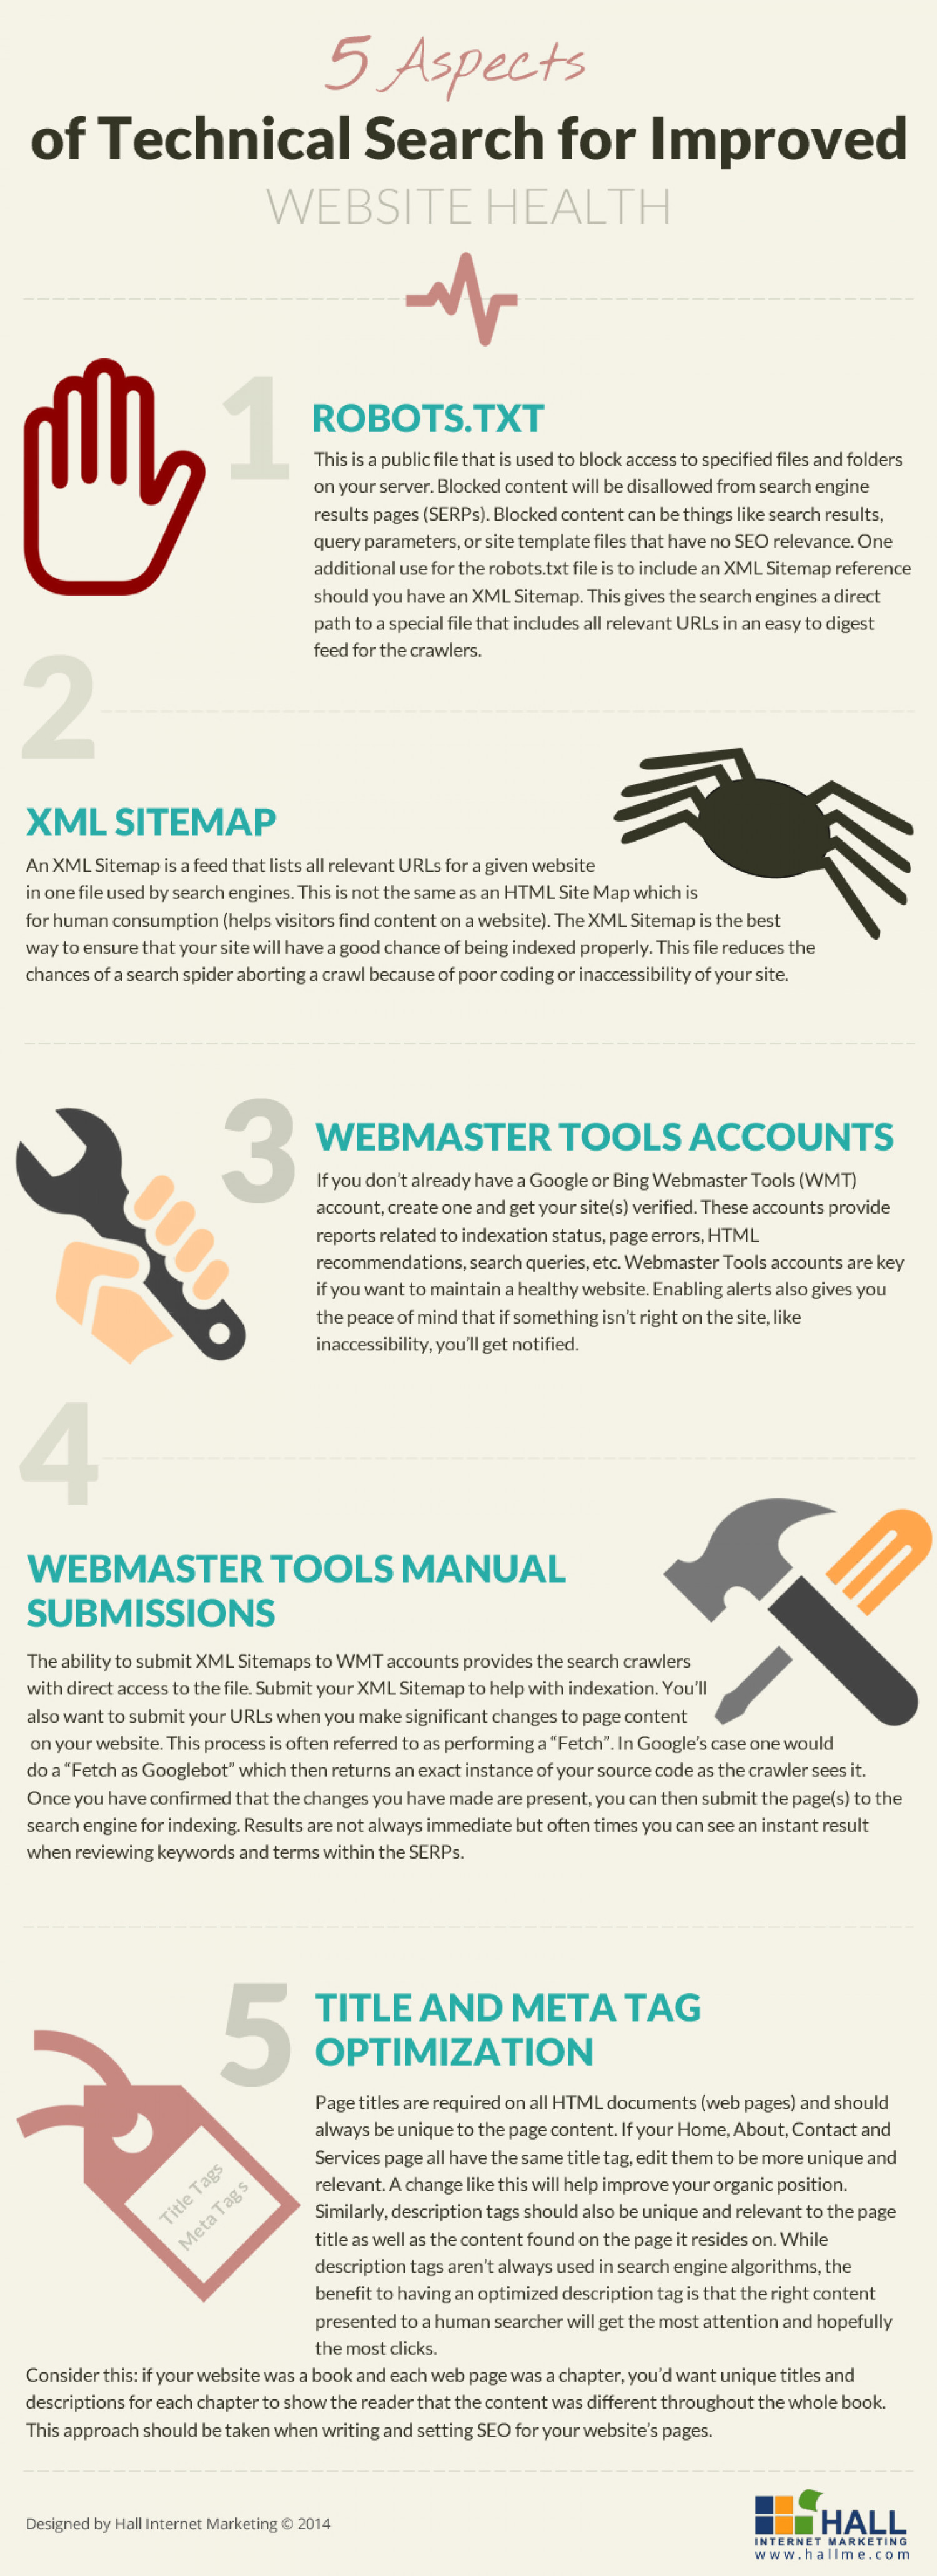 5 Aspects of Technical Search for Improved Website Health Infographic